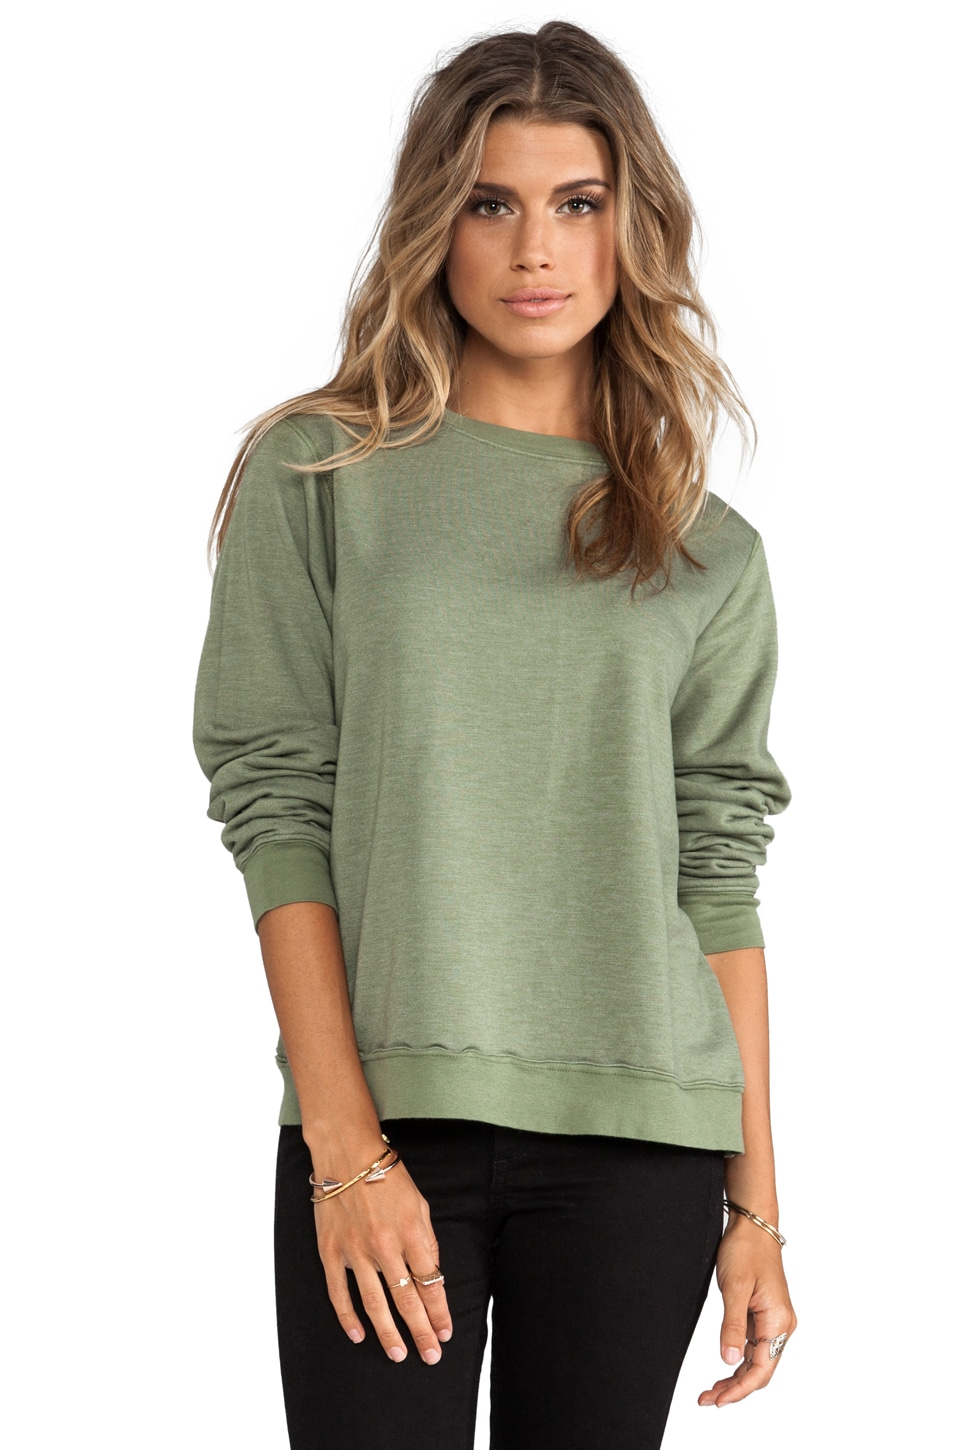 Daftbird Sweatshirt in Sage